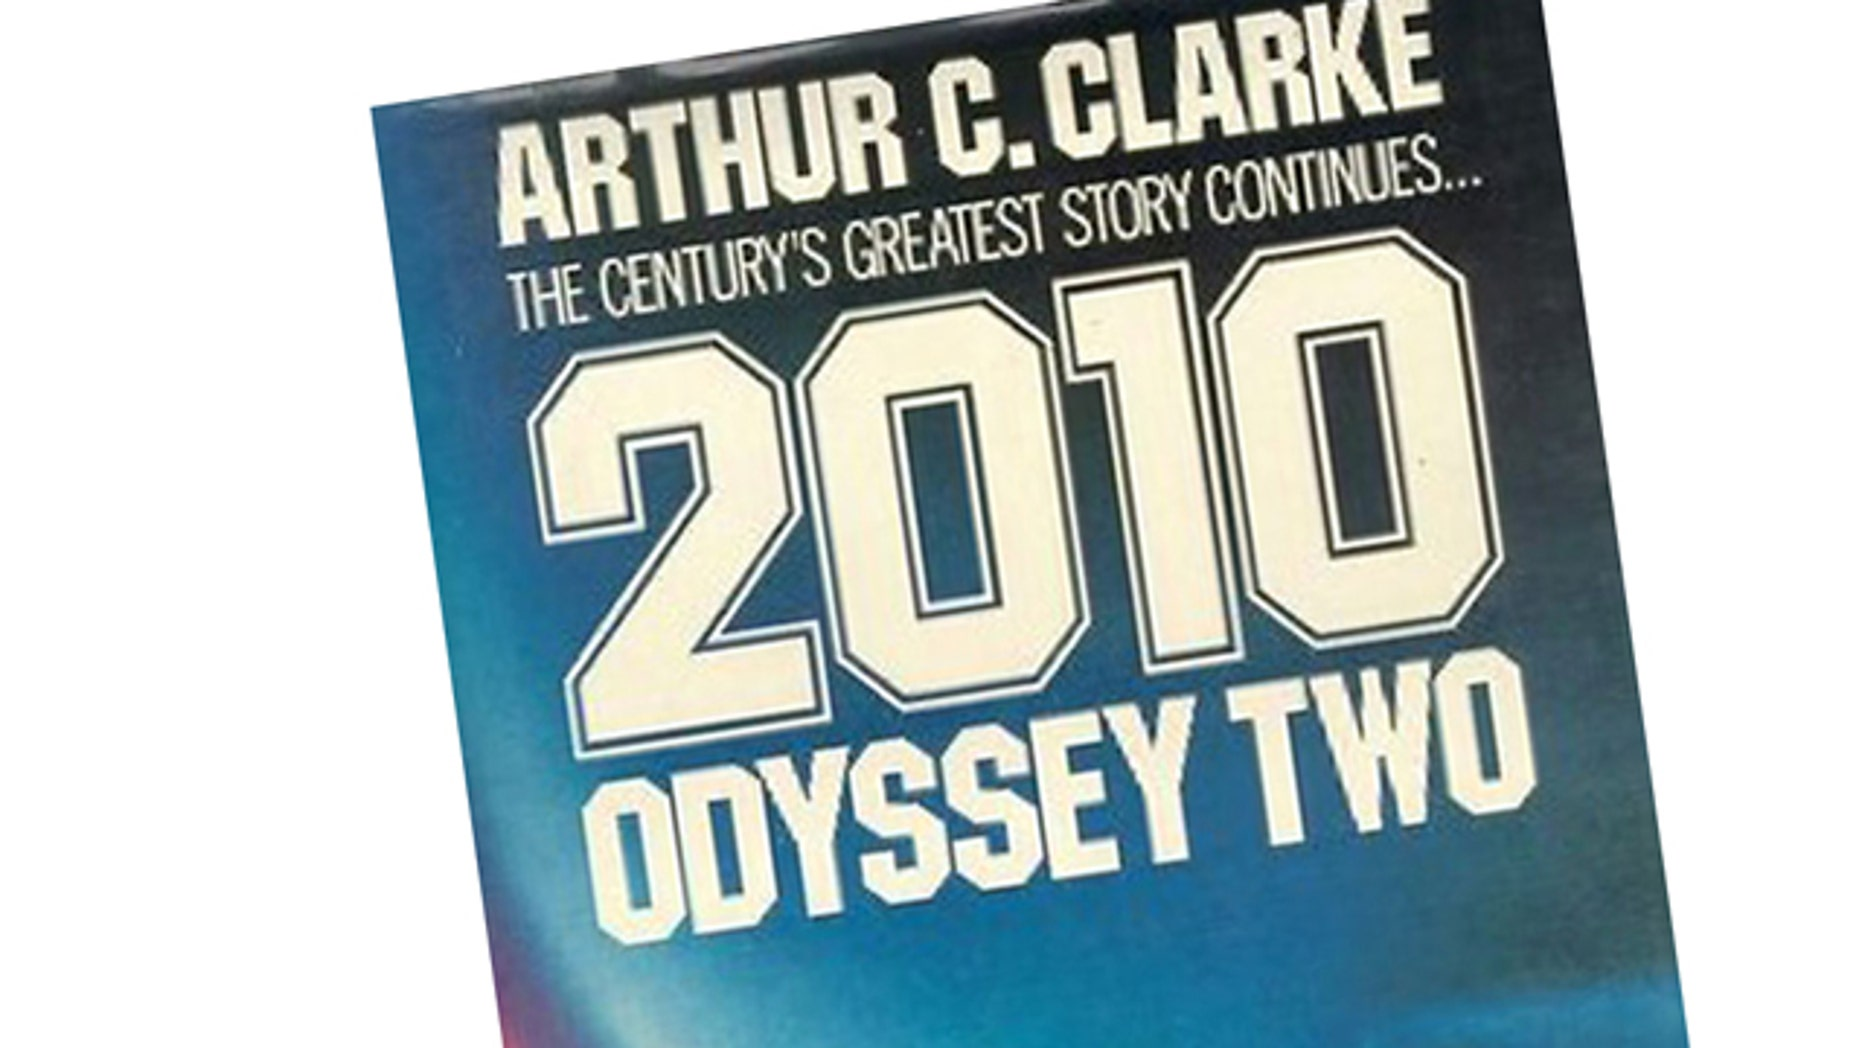 The Future is Now: Science fiction visionary Arthur C. Clarke painted an iconic view of the future in his book '2010: Odyssey Two' and other works. But reality has a long way to go to catch up.